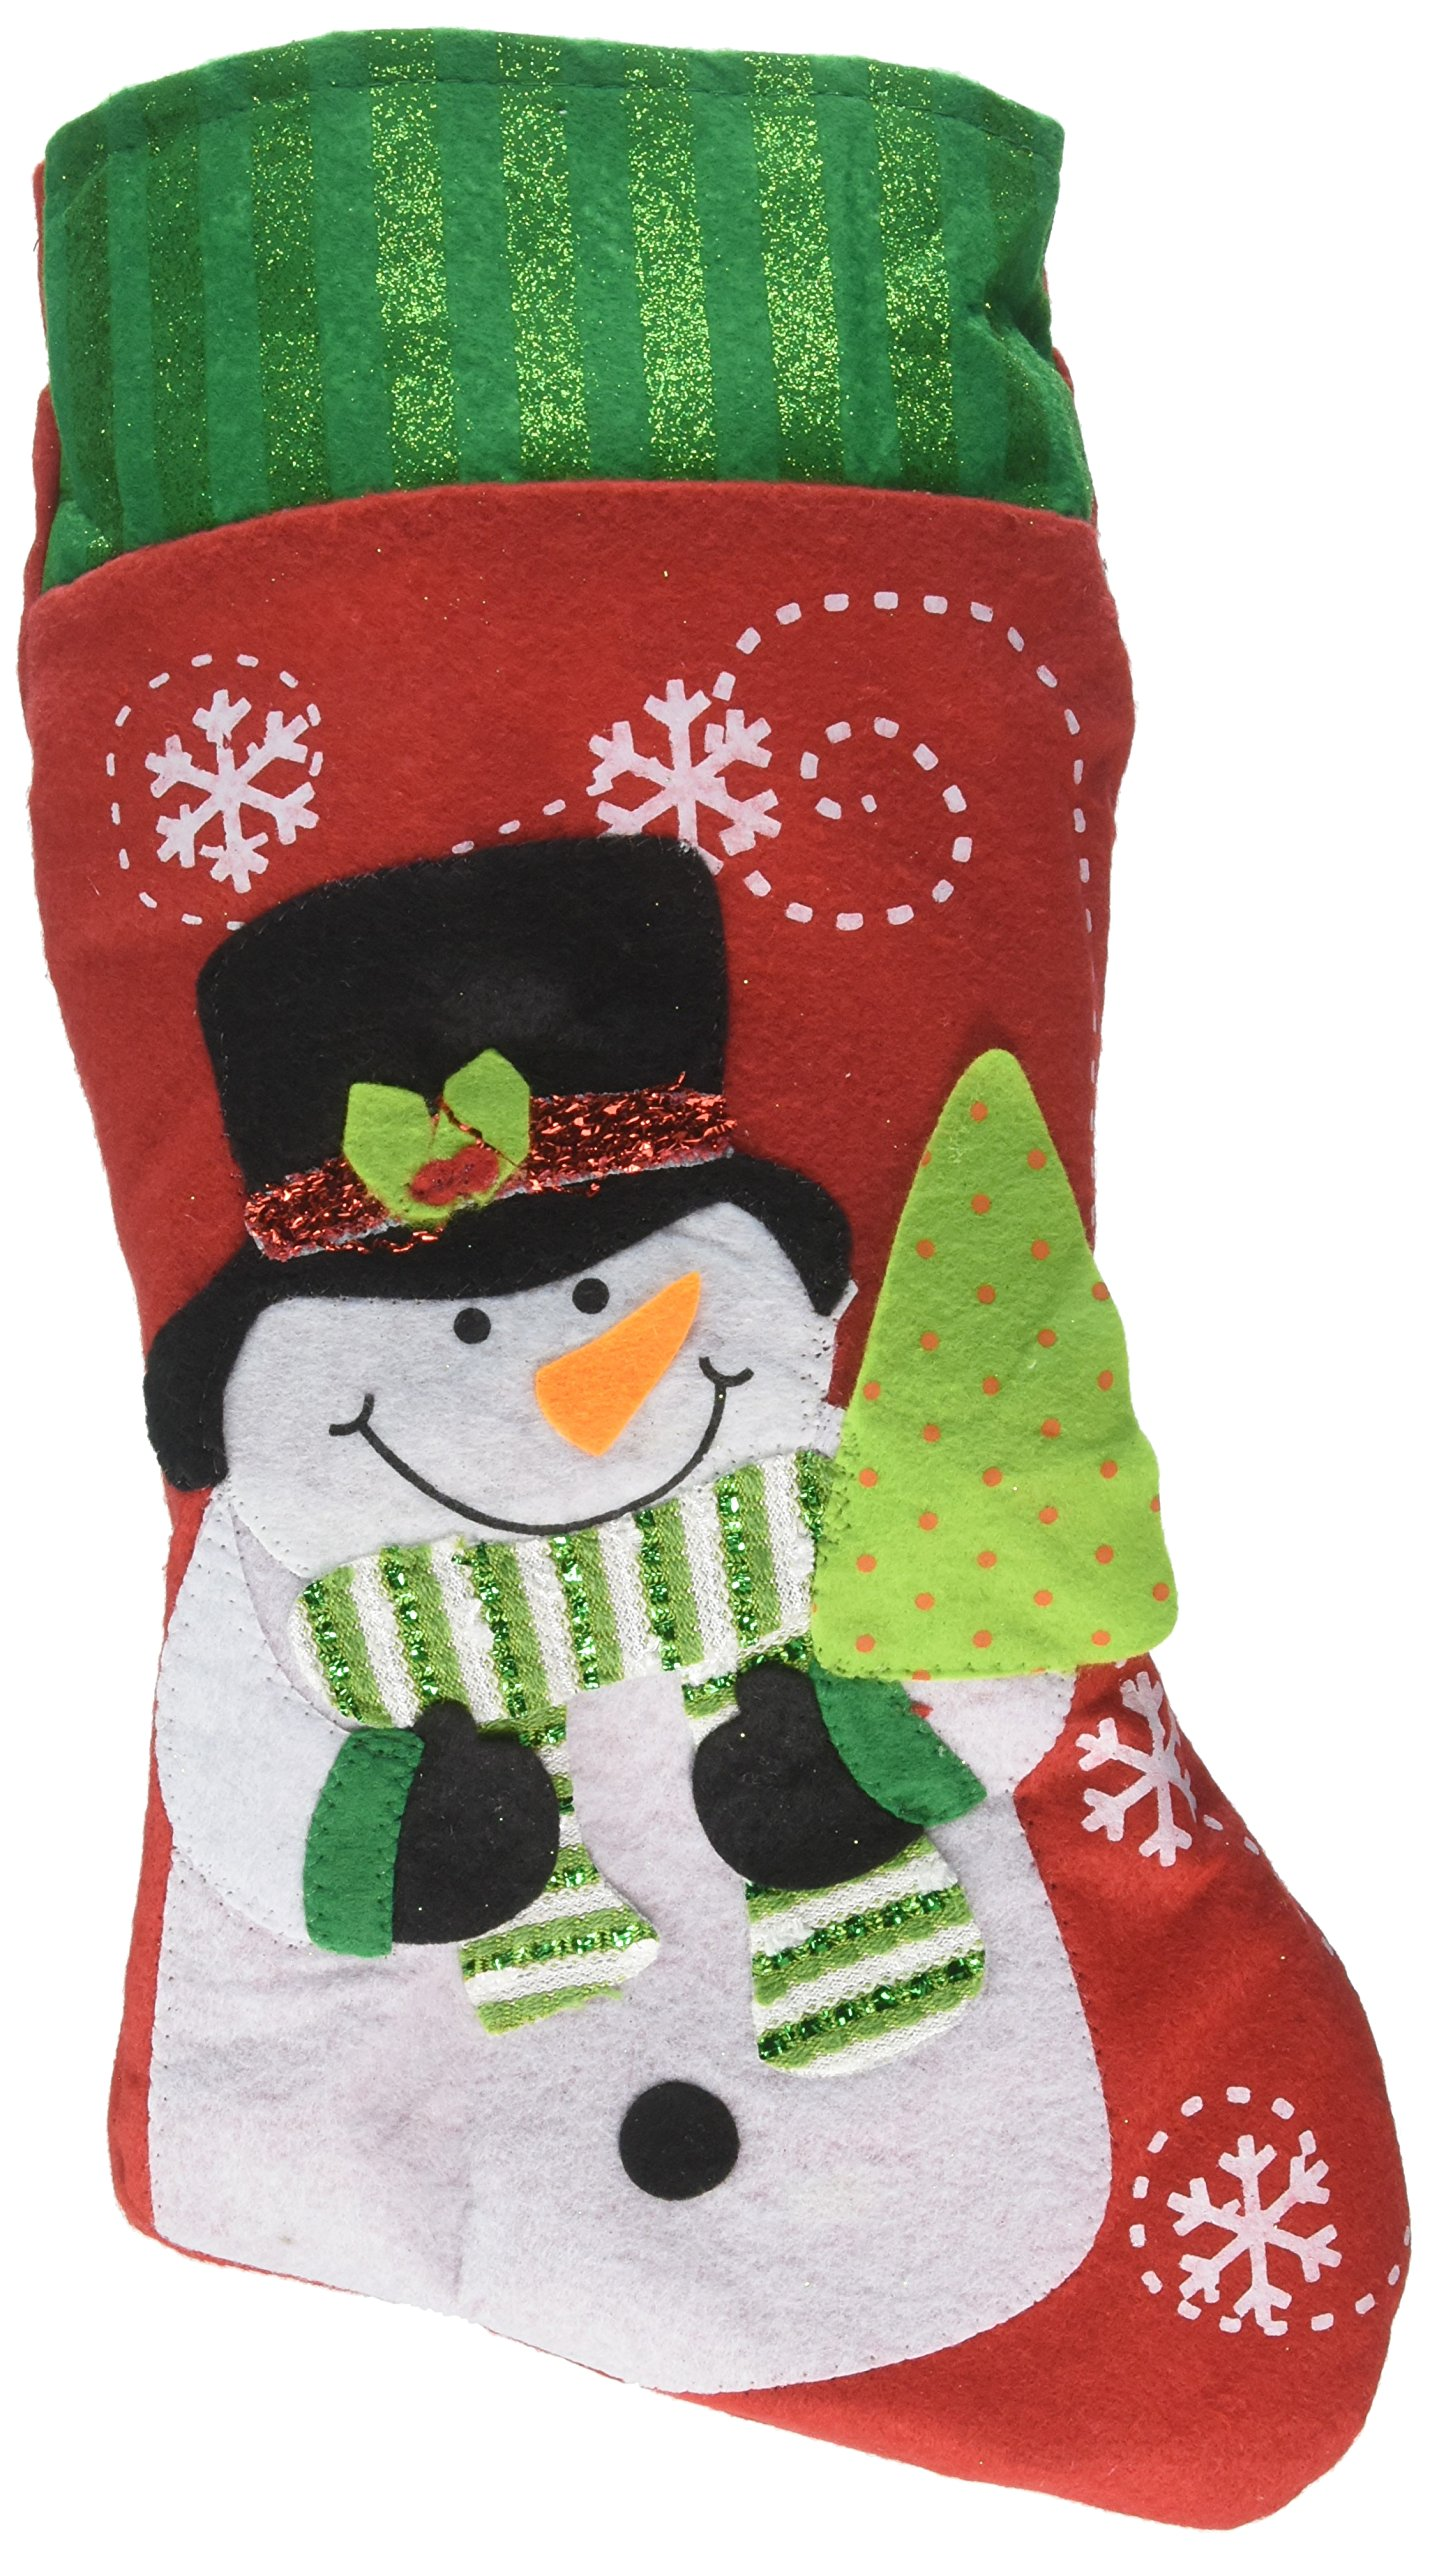 Christmas Stocking Sock, TORUBIA Christmas 3D Tree Wall Hanging Sock Larger Sock Candy bags With Lovely Santa Reindeer Snowman Decoration 8.6×21.2 Inch Perfect For Christmas Stocking (Snowman)